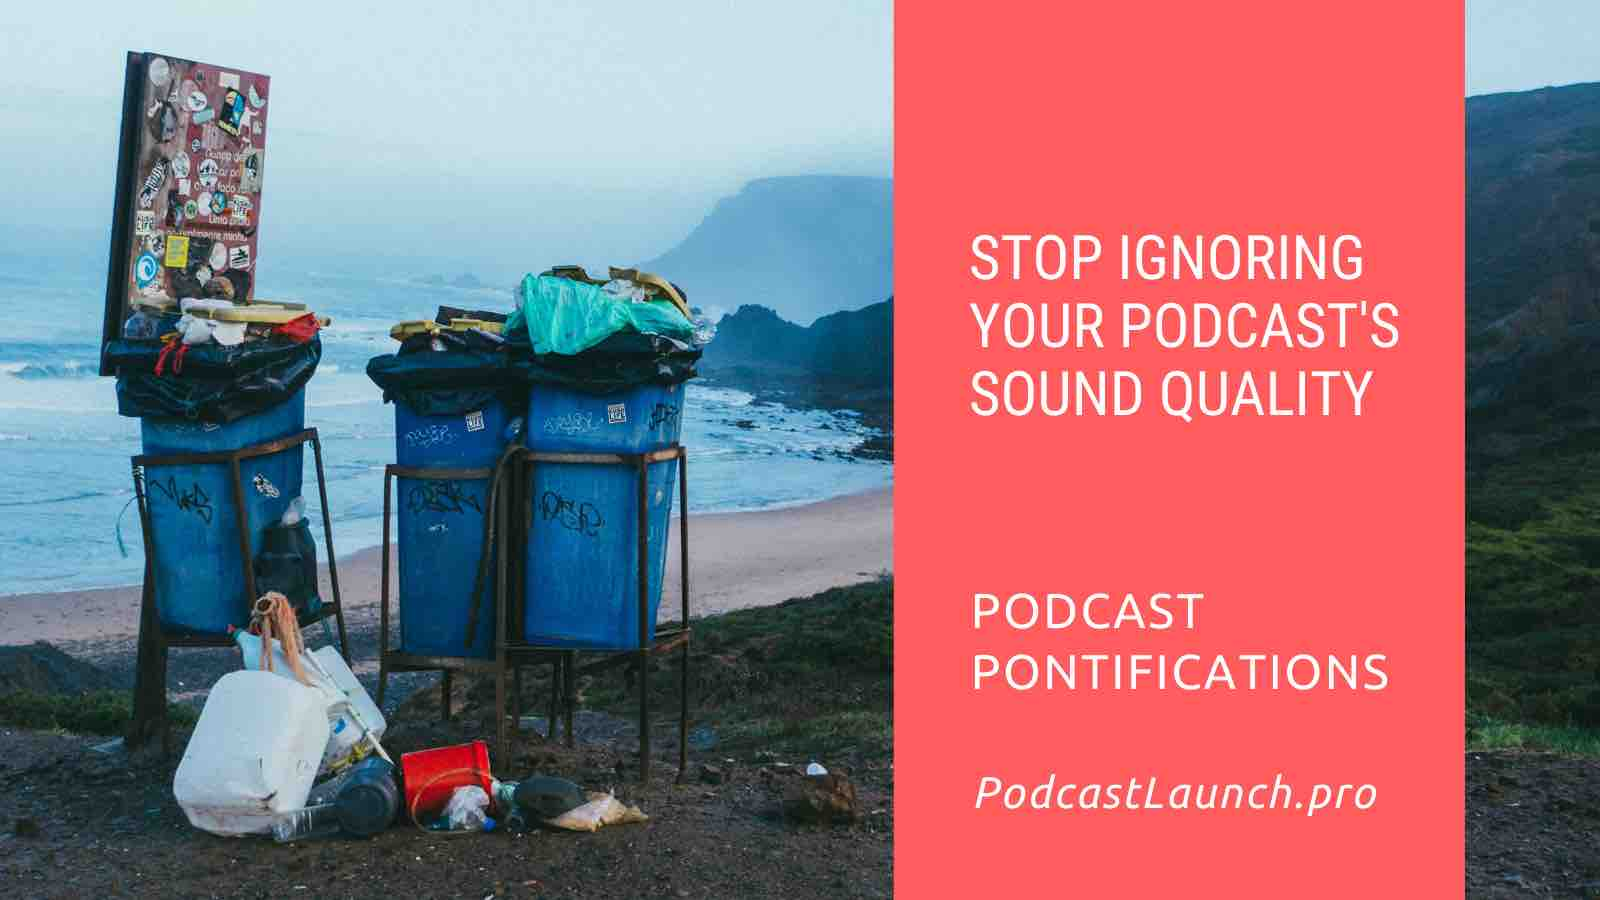 Stop Ignoring Your Podcast's Sound Quality